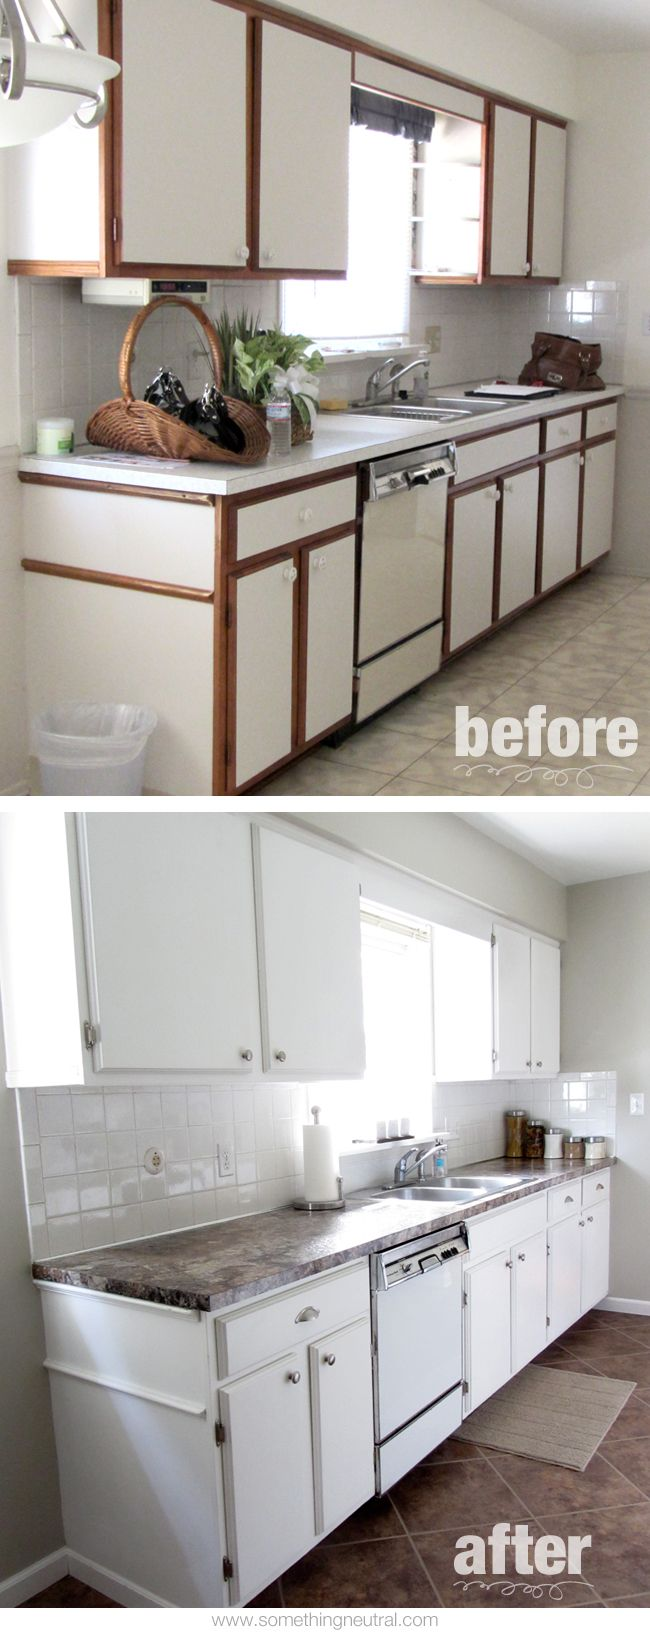 painting laminate kitchen cabinets before and after laminate kitchen cabinets Before And After Photos Of Painted Laminate Cabinets